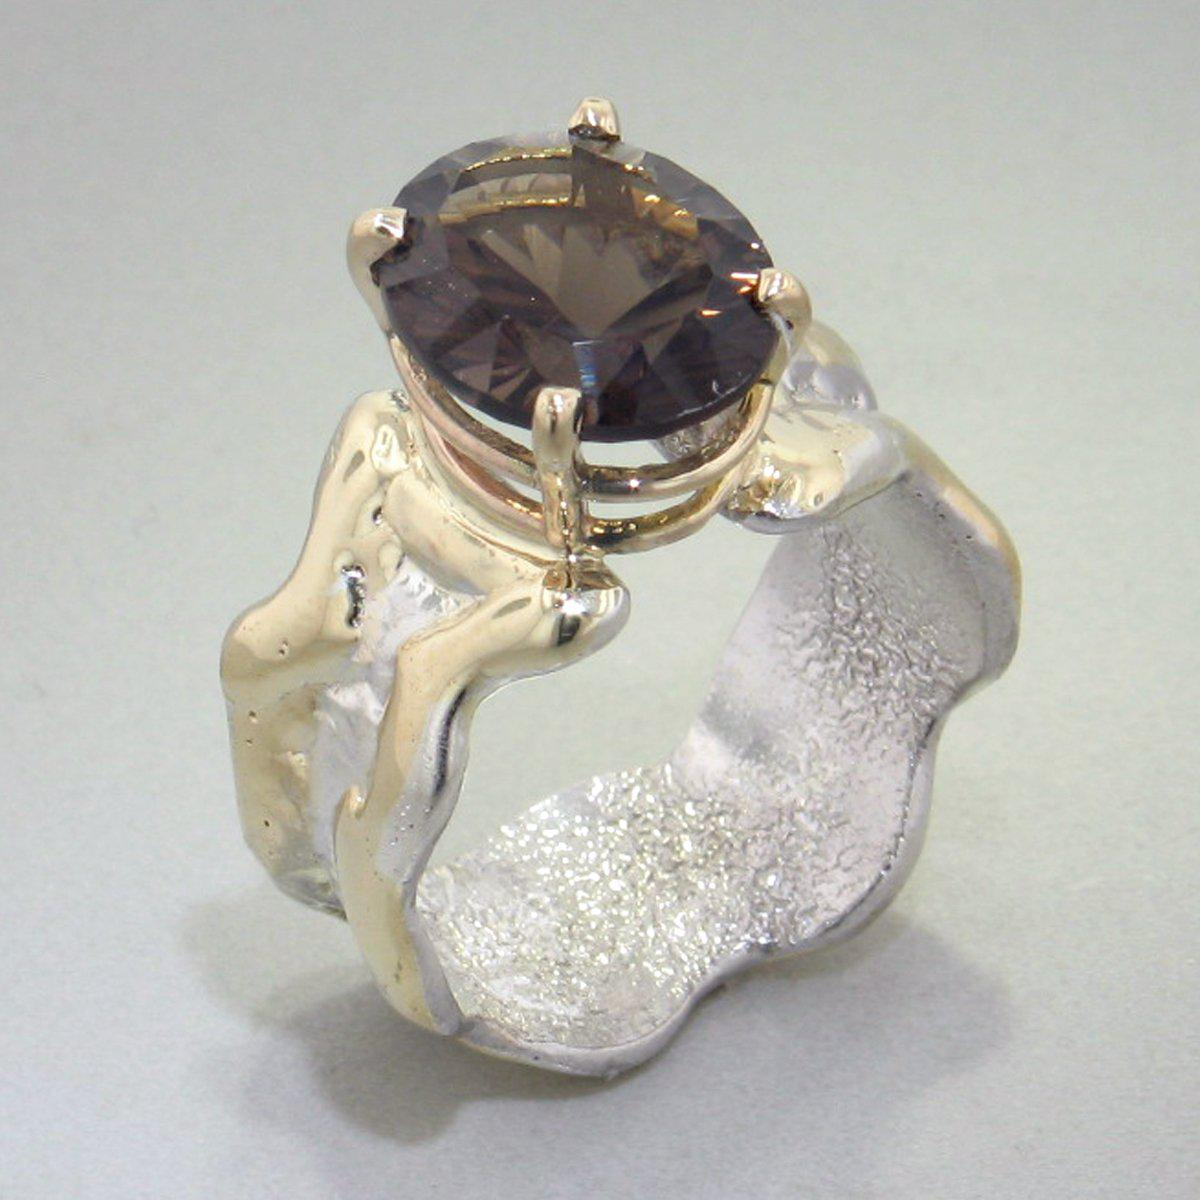 14K Gold & Crystalline Silver Smoky Quartz Ring - 28994-Fusion Designs-Renee Taylor Gallery